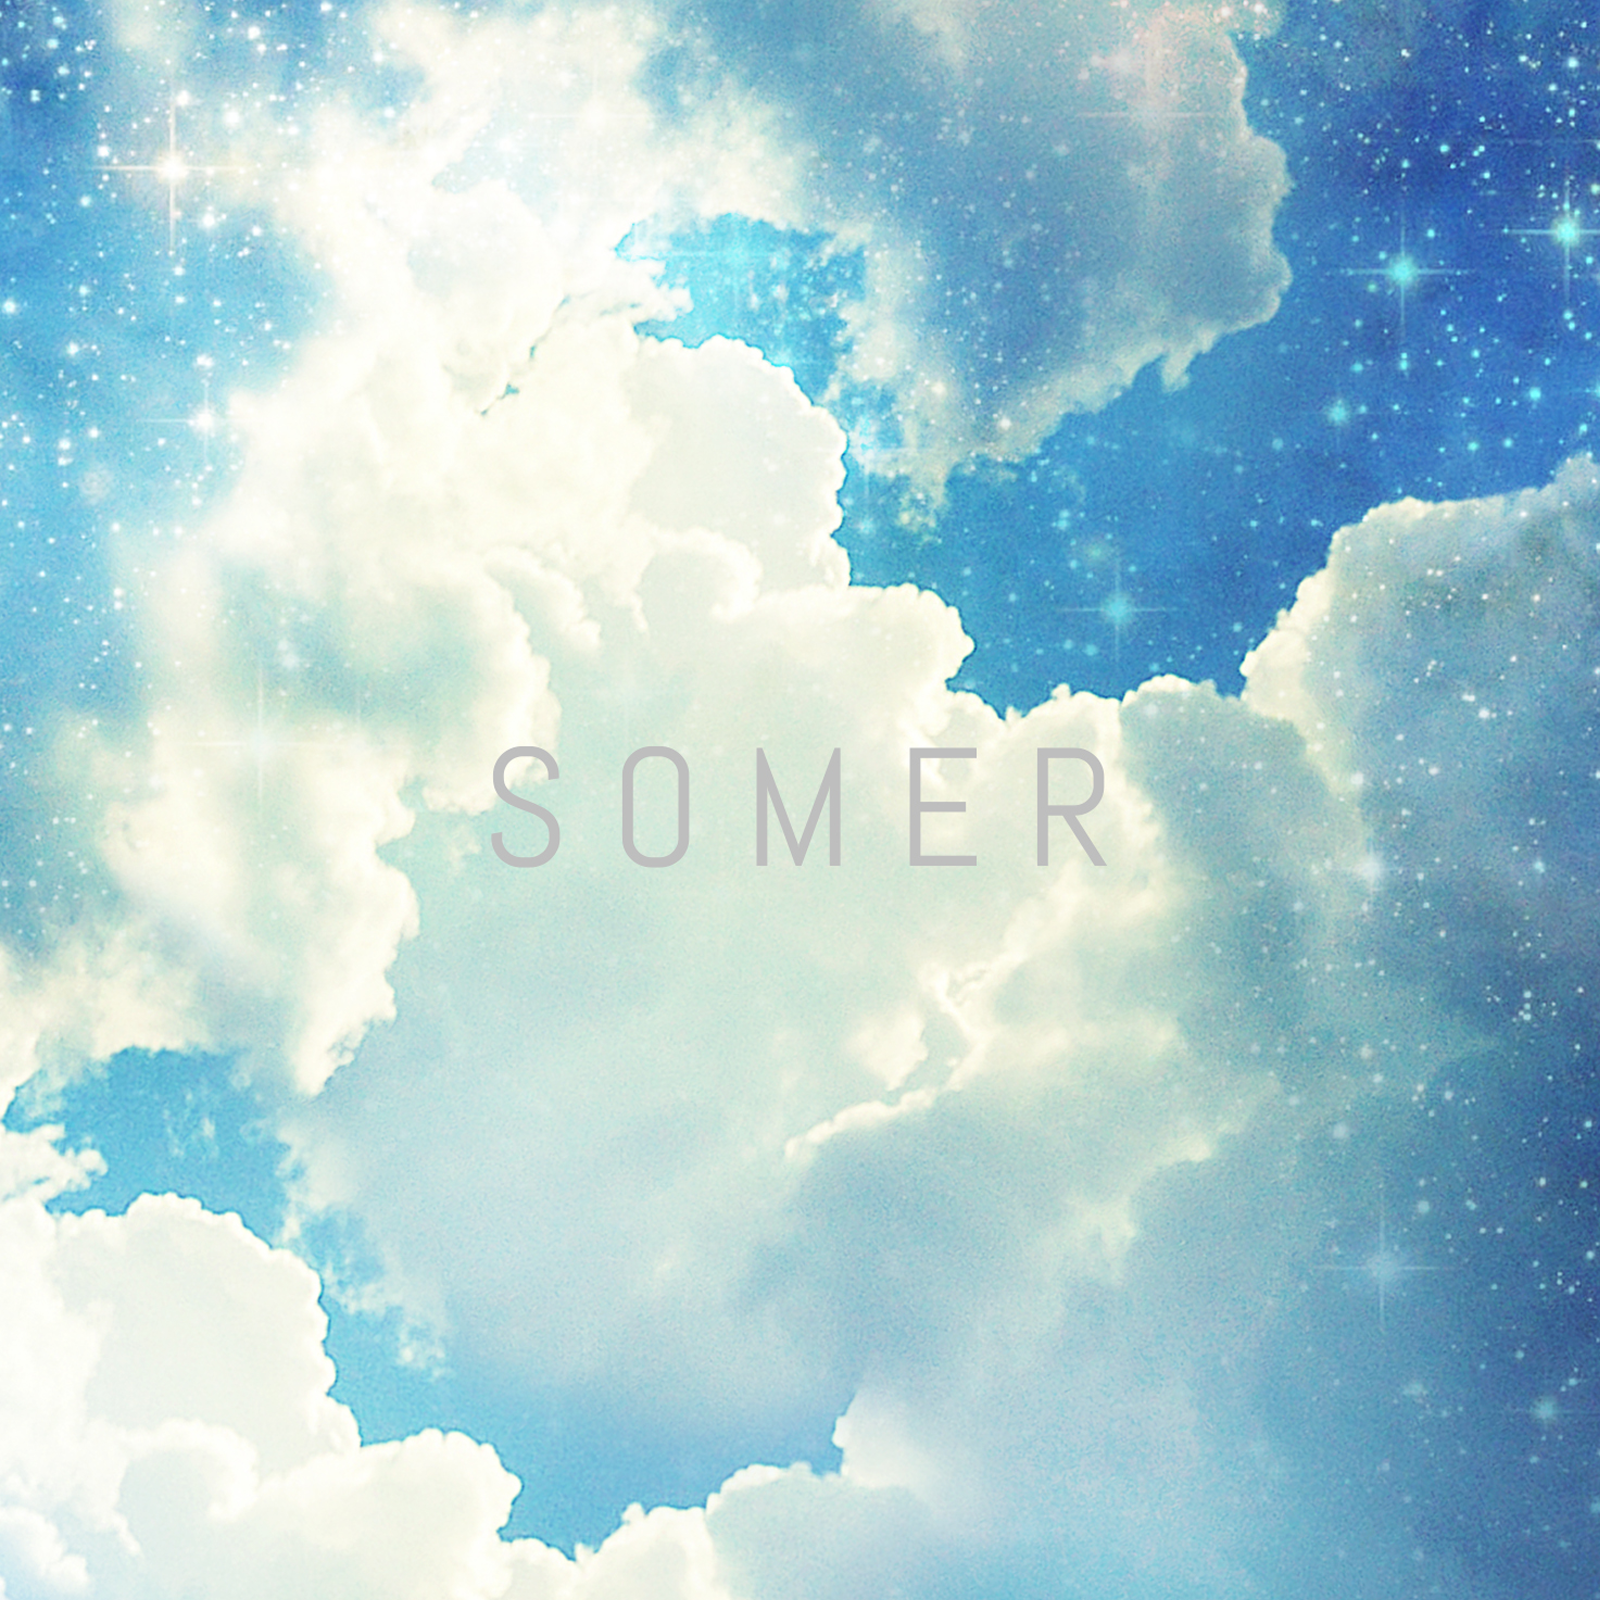 somer cover.png